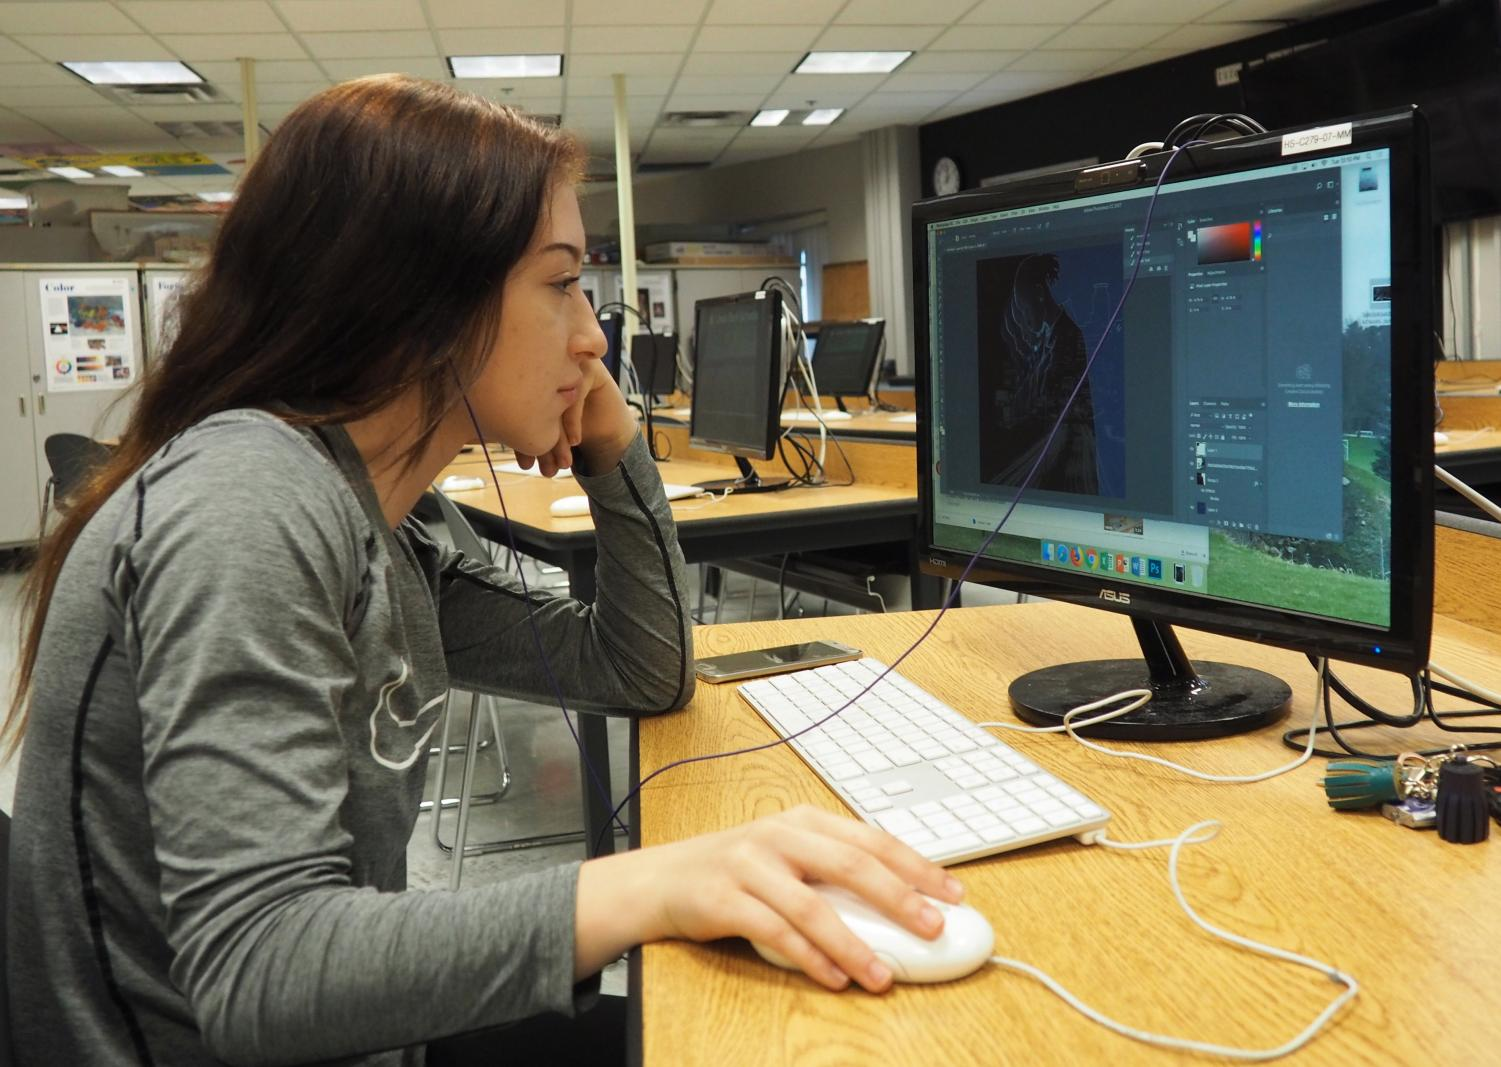 Senior Alex Monson works on her graphics. Monson is currently seeking career opportunities in graphic design.